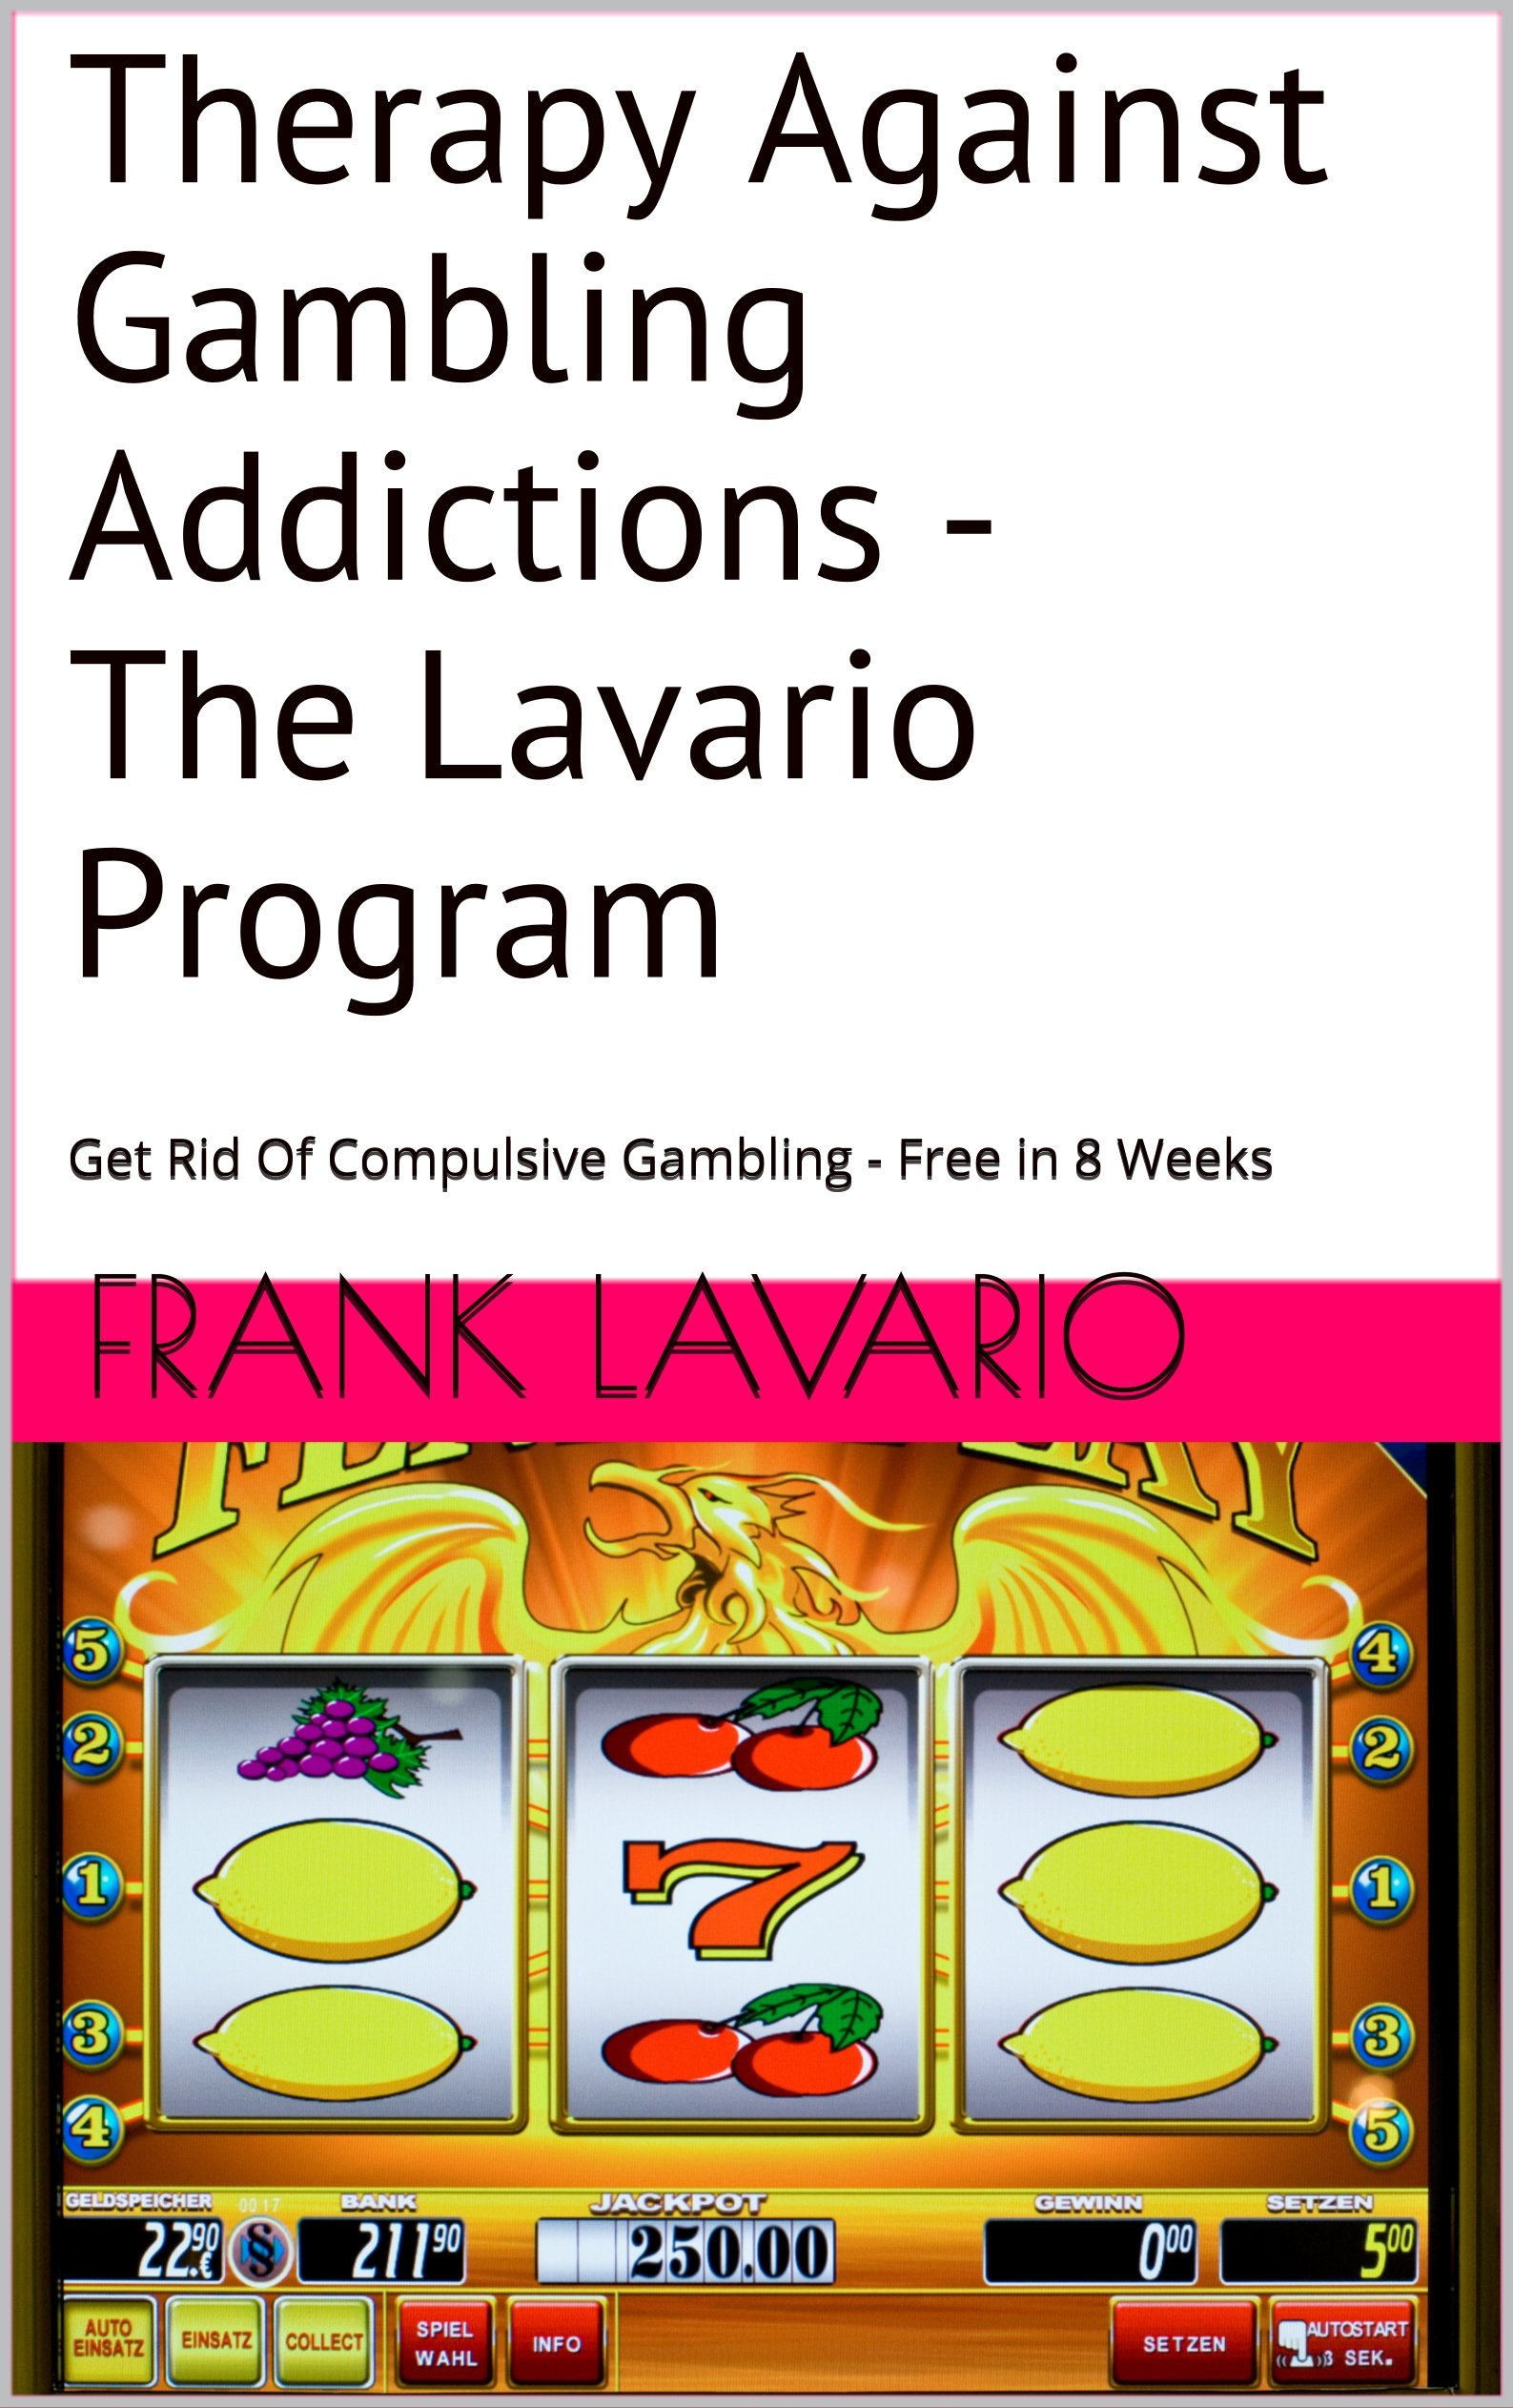 Therapy Against Gambling Addictions - The Lavario